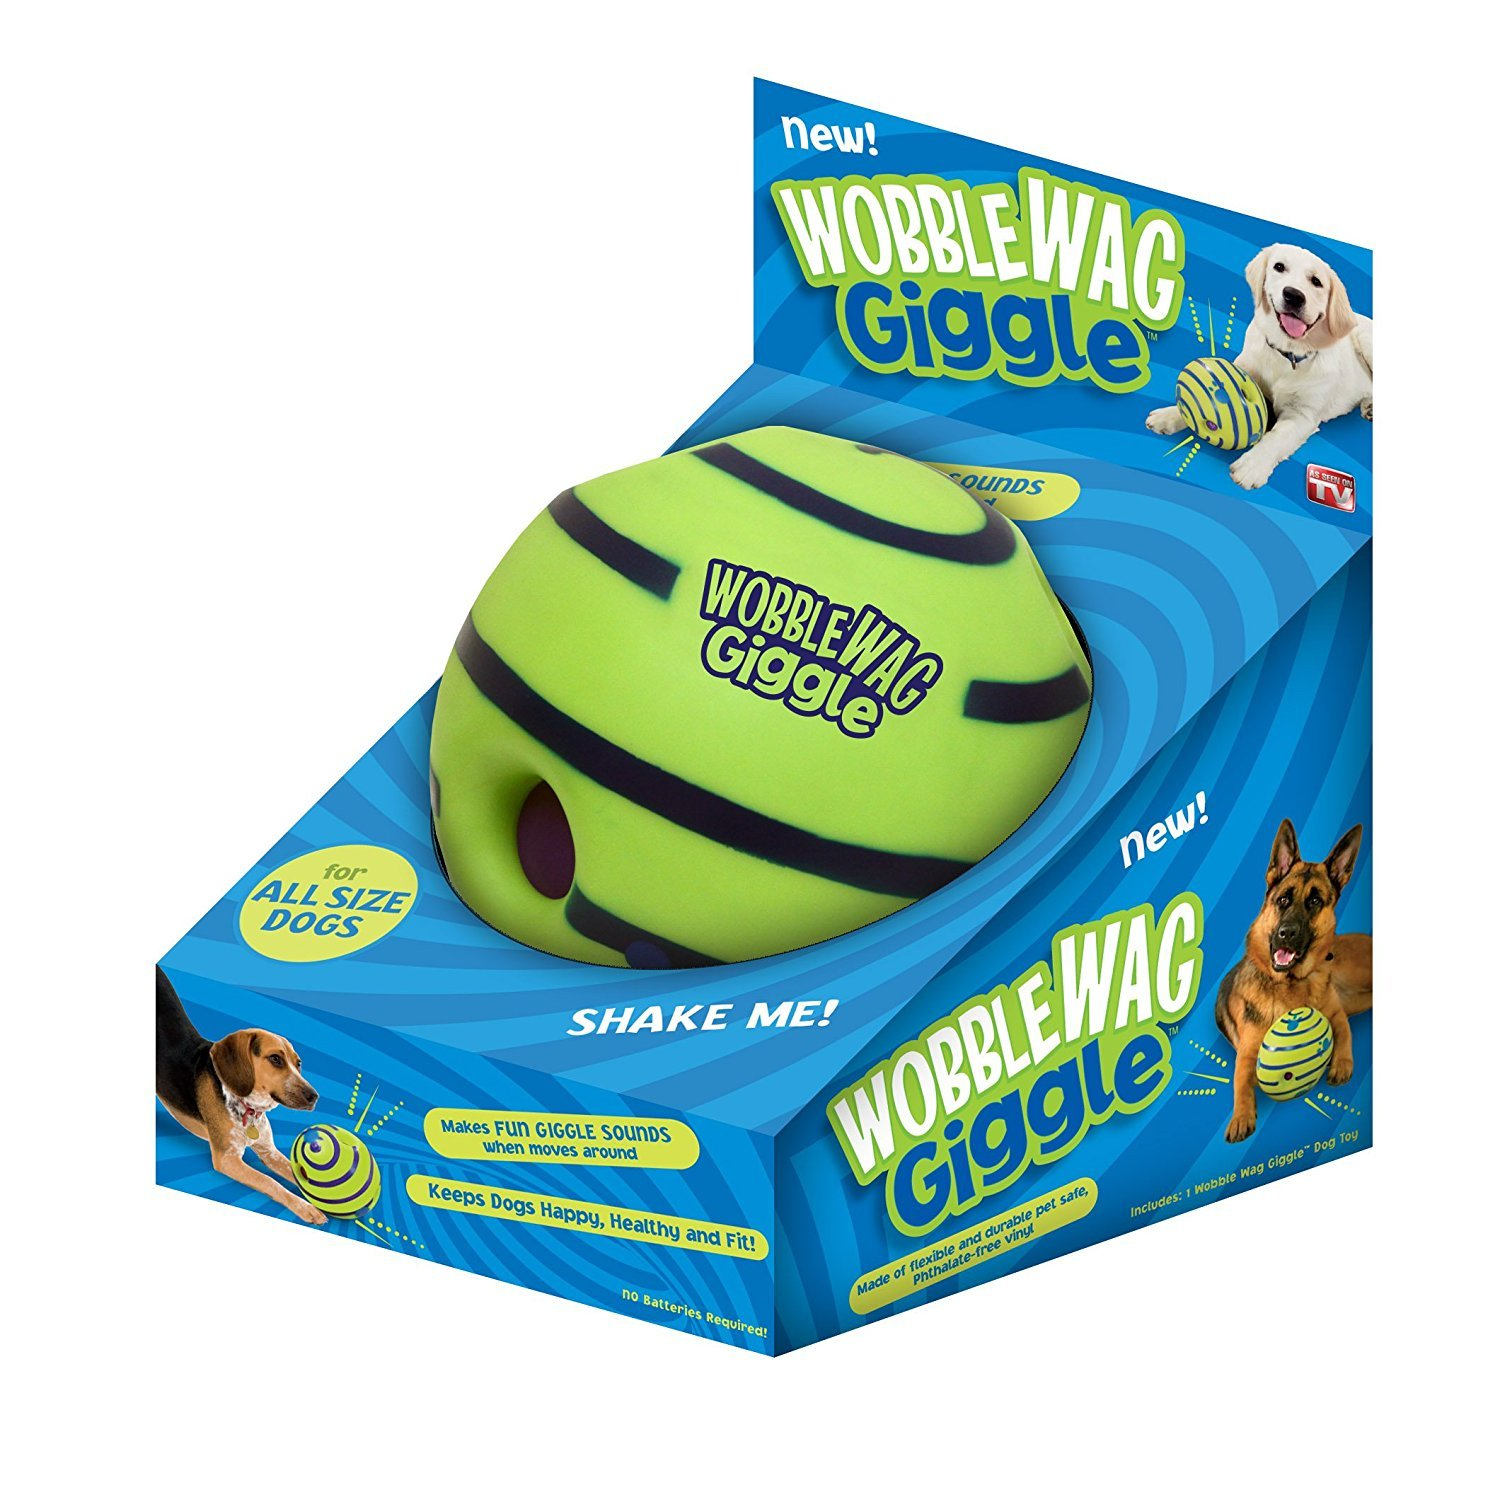 Allstar Innovations Wobble Wag Giggle Ball, Dog Toy 3-Pack